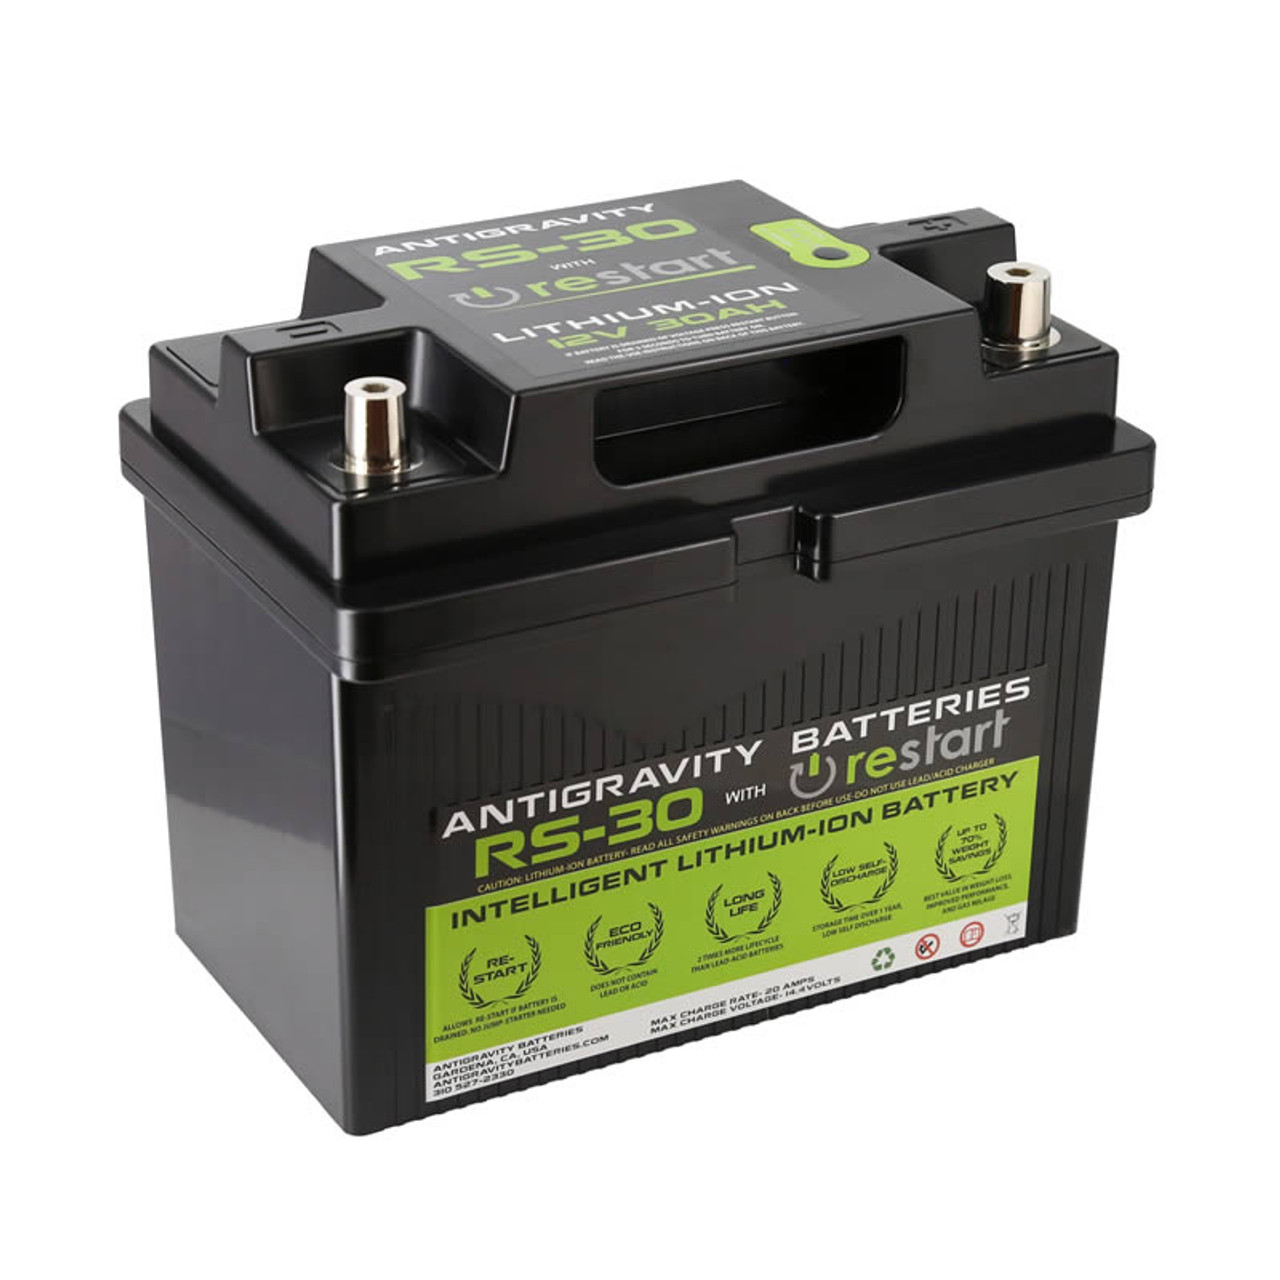 Lithium Ion Car Battery >> Antigravity Batteries Rs 30 Lightweight Performance Lithium Ion